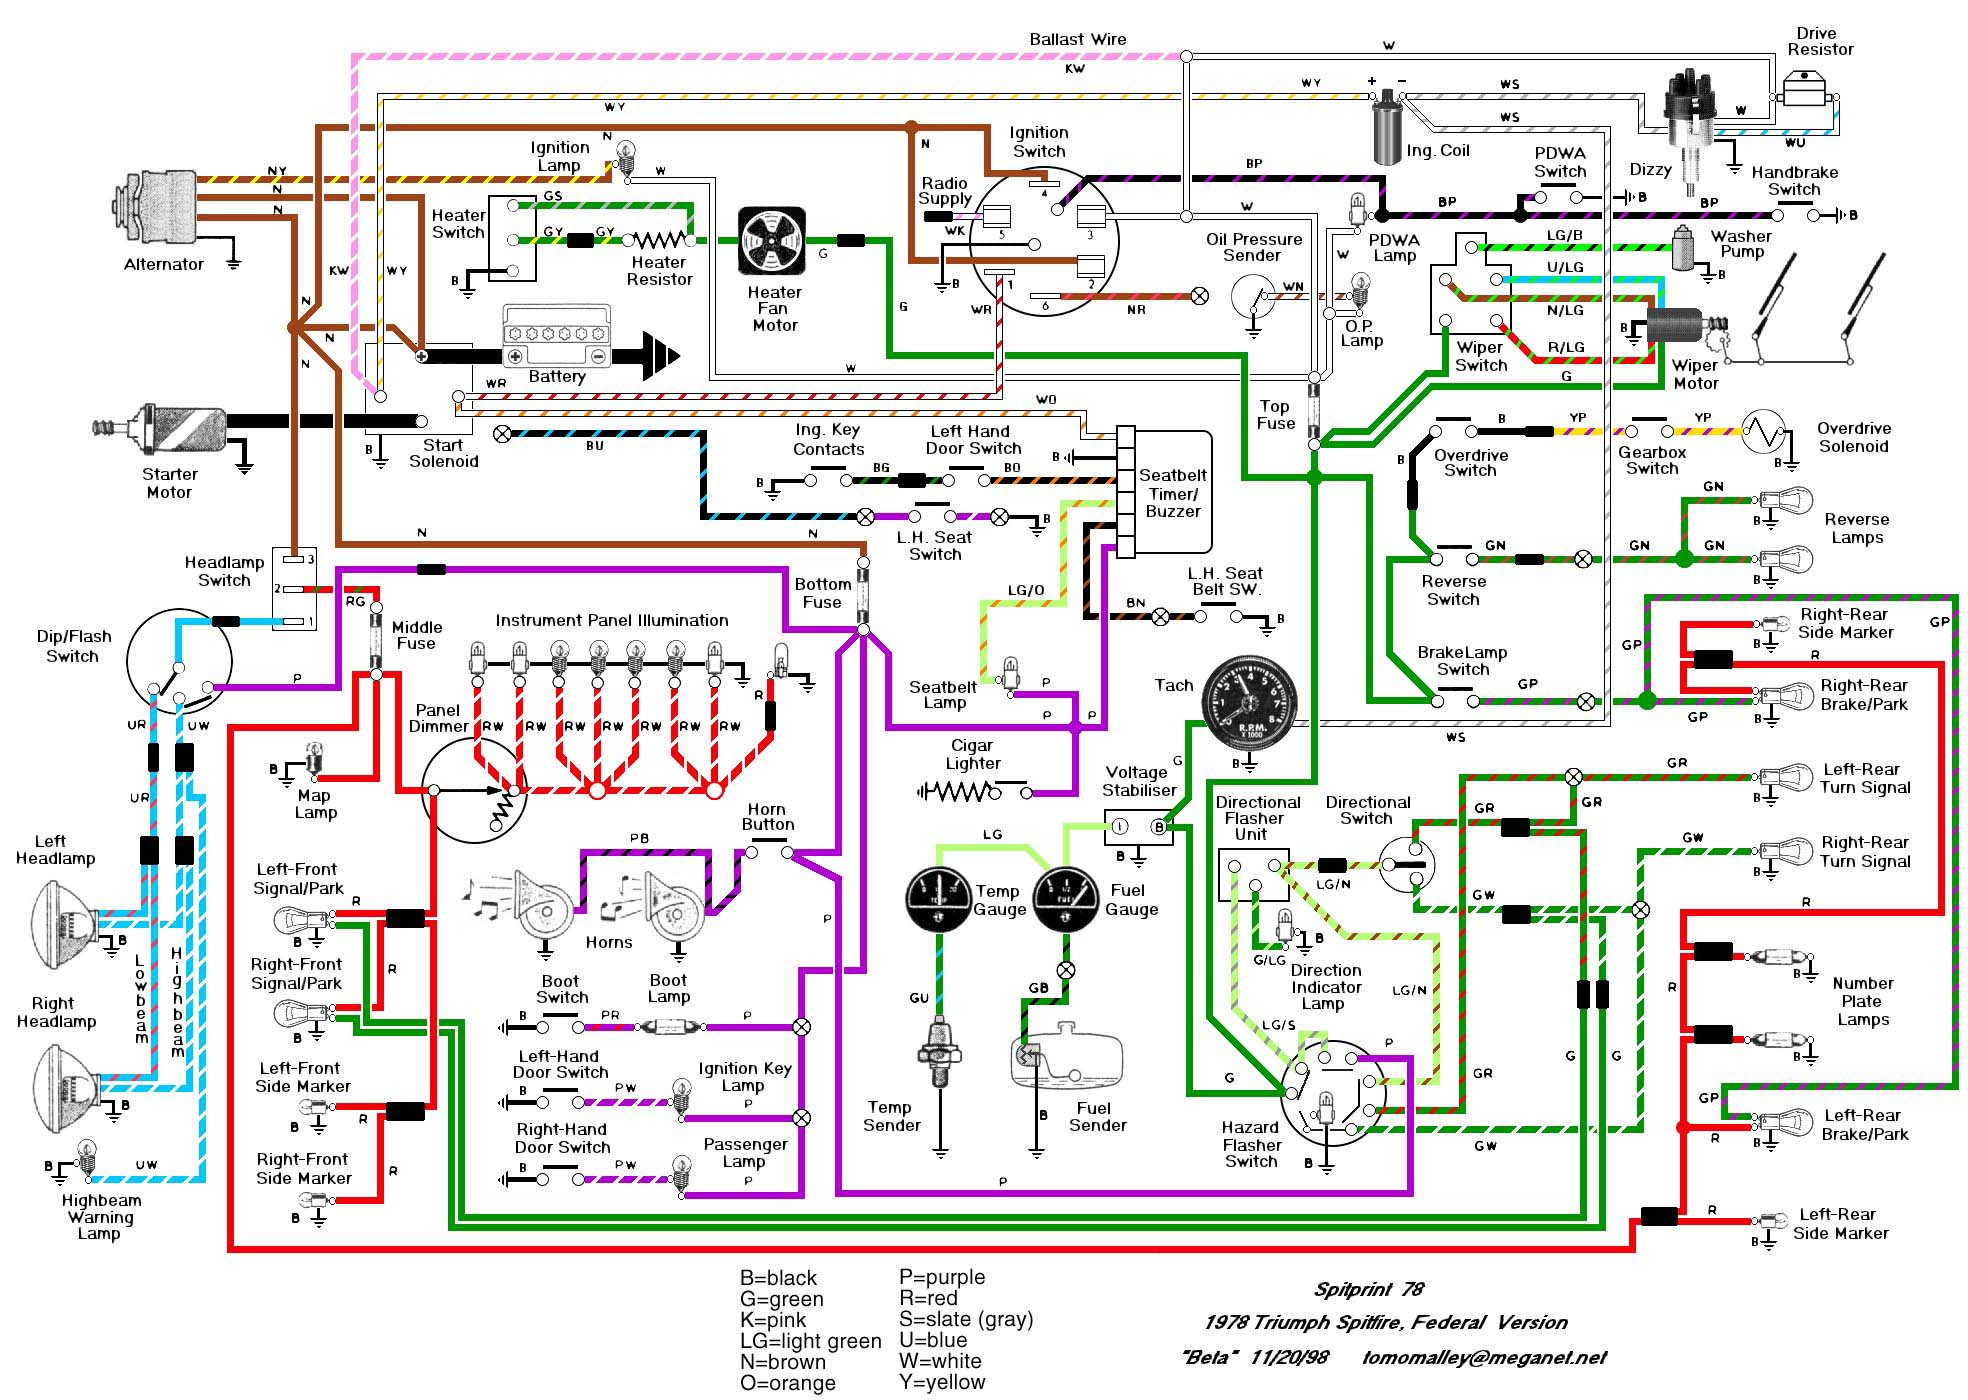 Mgf Wiring Diagram additionally 2c5b9 Want Install Brake Controller 2005 Ram 1500 Qua likewise Porsche 914 Wiring Diagram also 94specs likewise 1426988 1986 F 150 Engine Swap Difficulties 3. on 1998 mustang stereo connections